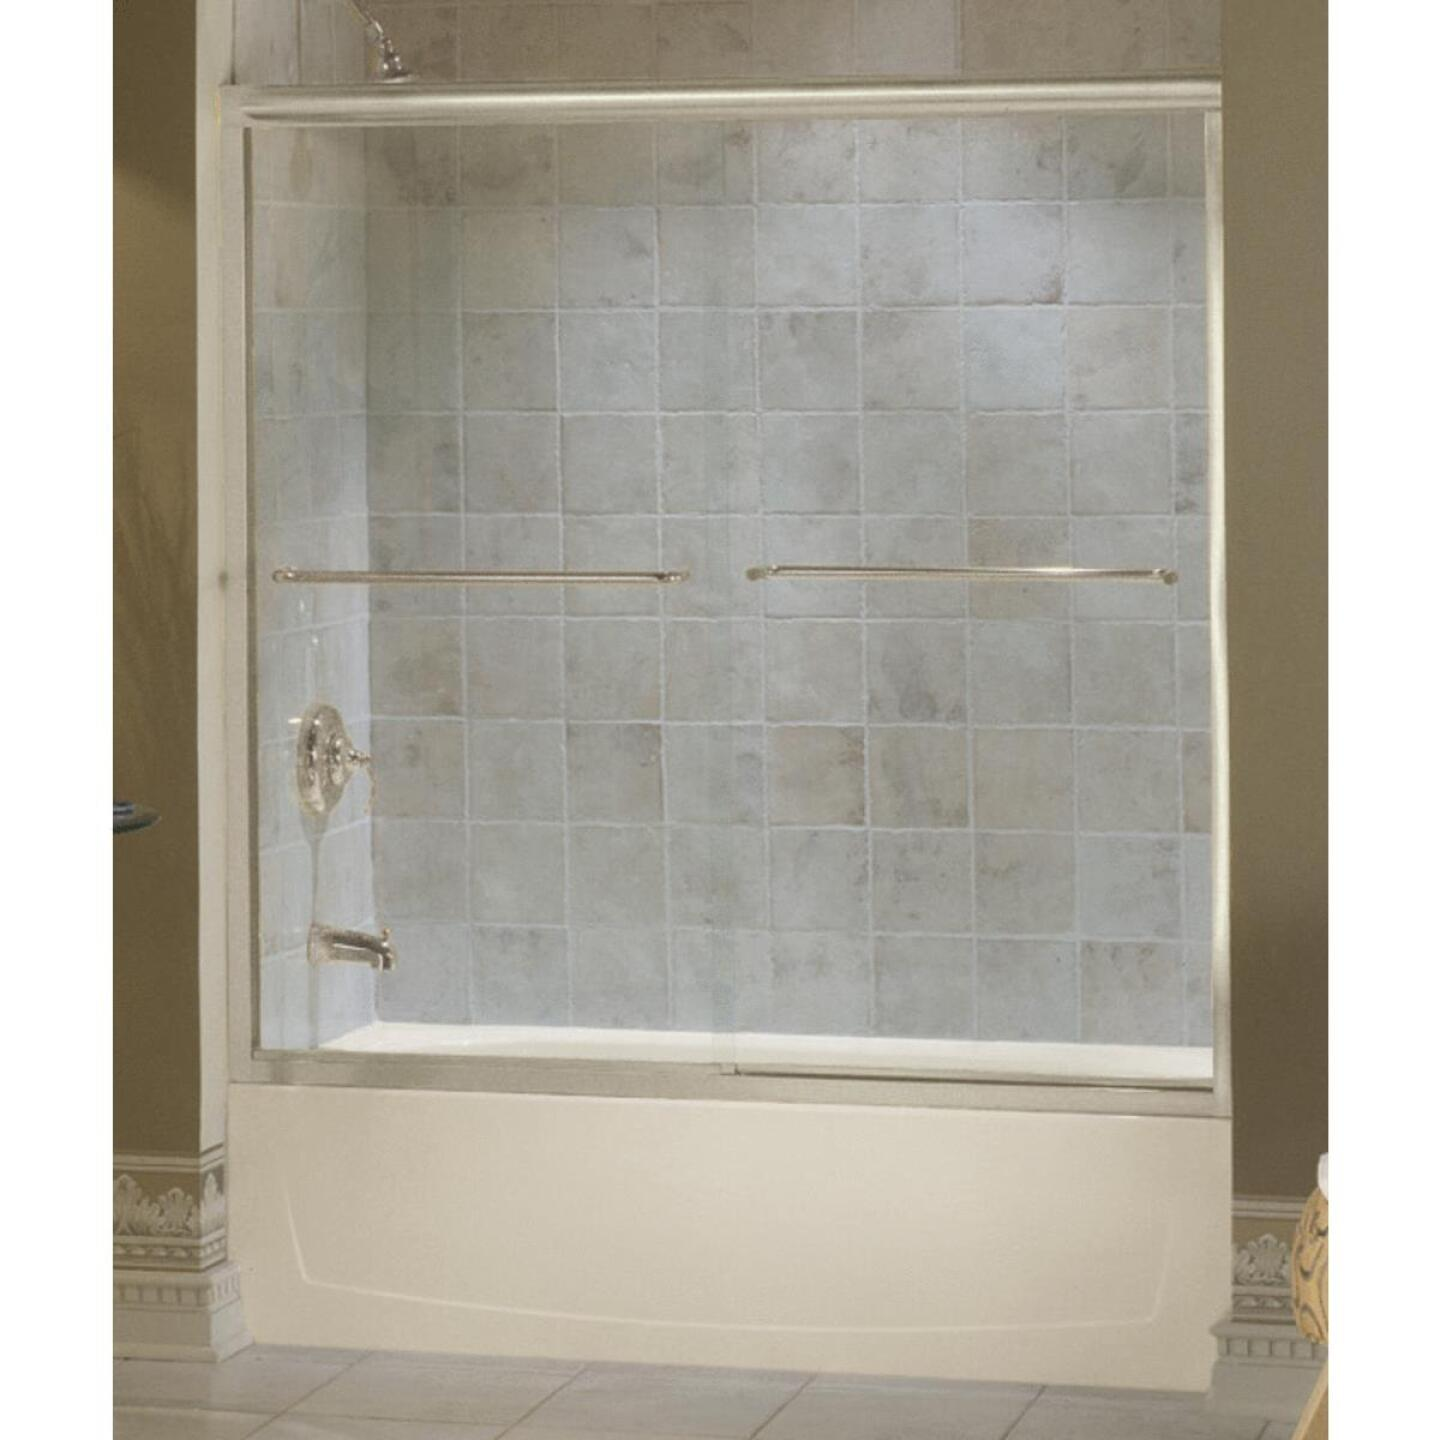 Sterling Finesse 59-5/8 In. W. X 55-3/4 In. H. Nickel Semi-Frameless Clear Glass Sliding Tub Door Image 1